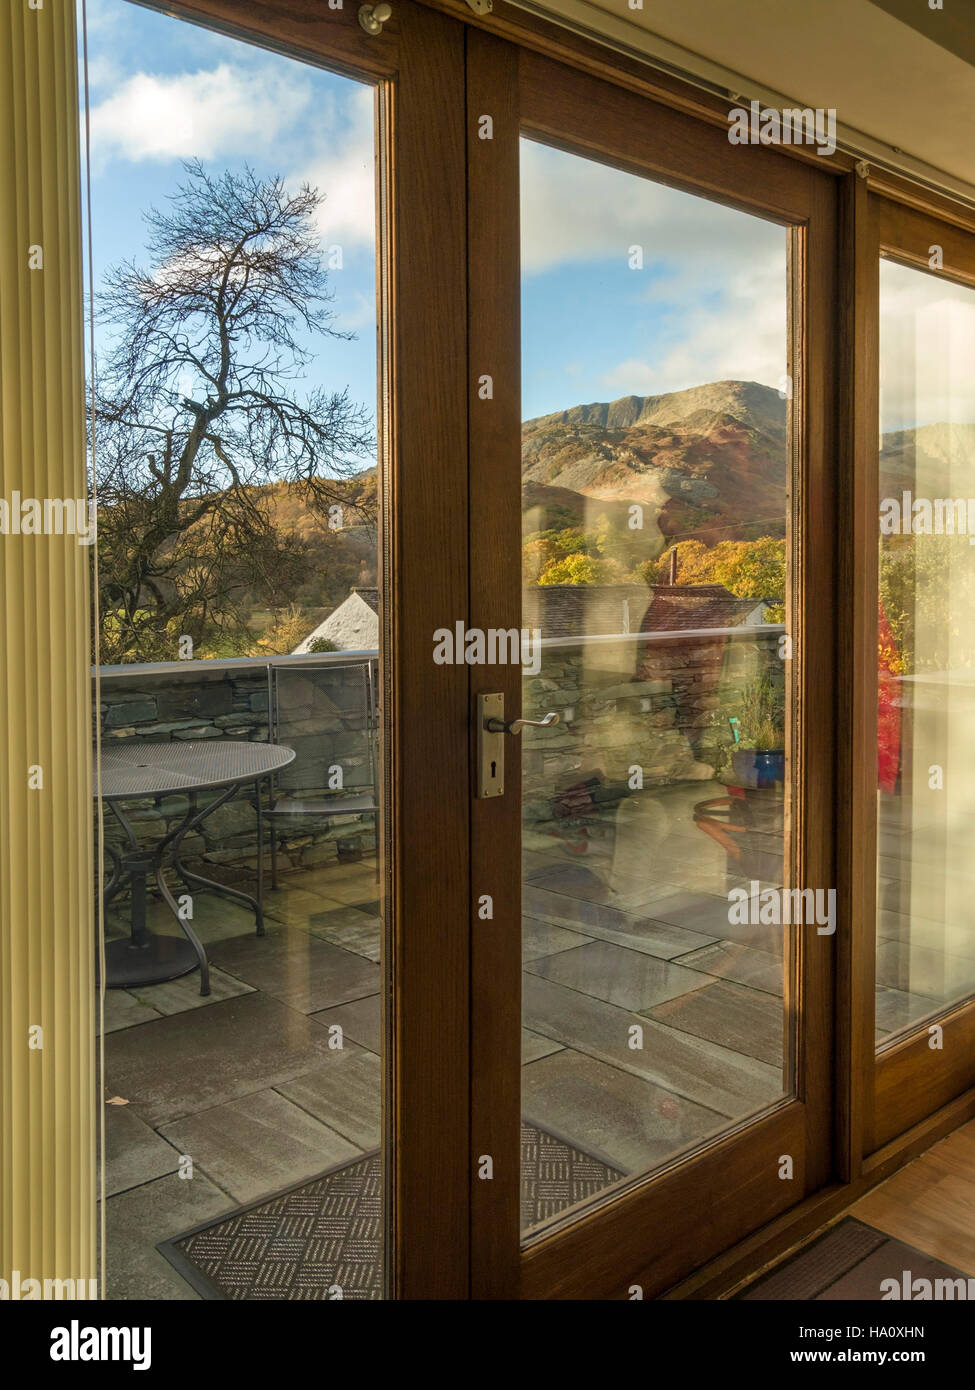 Wooden Bi Folding Patio Doors With Pretty Lakeland View, Little Langdale,  Cumbria, England, UK.